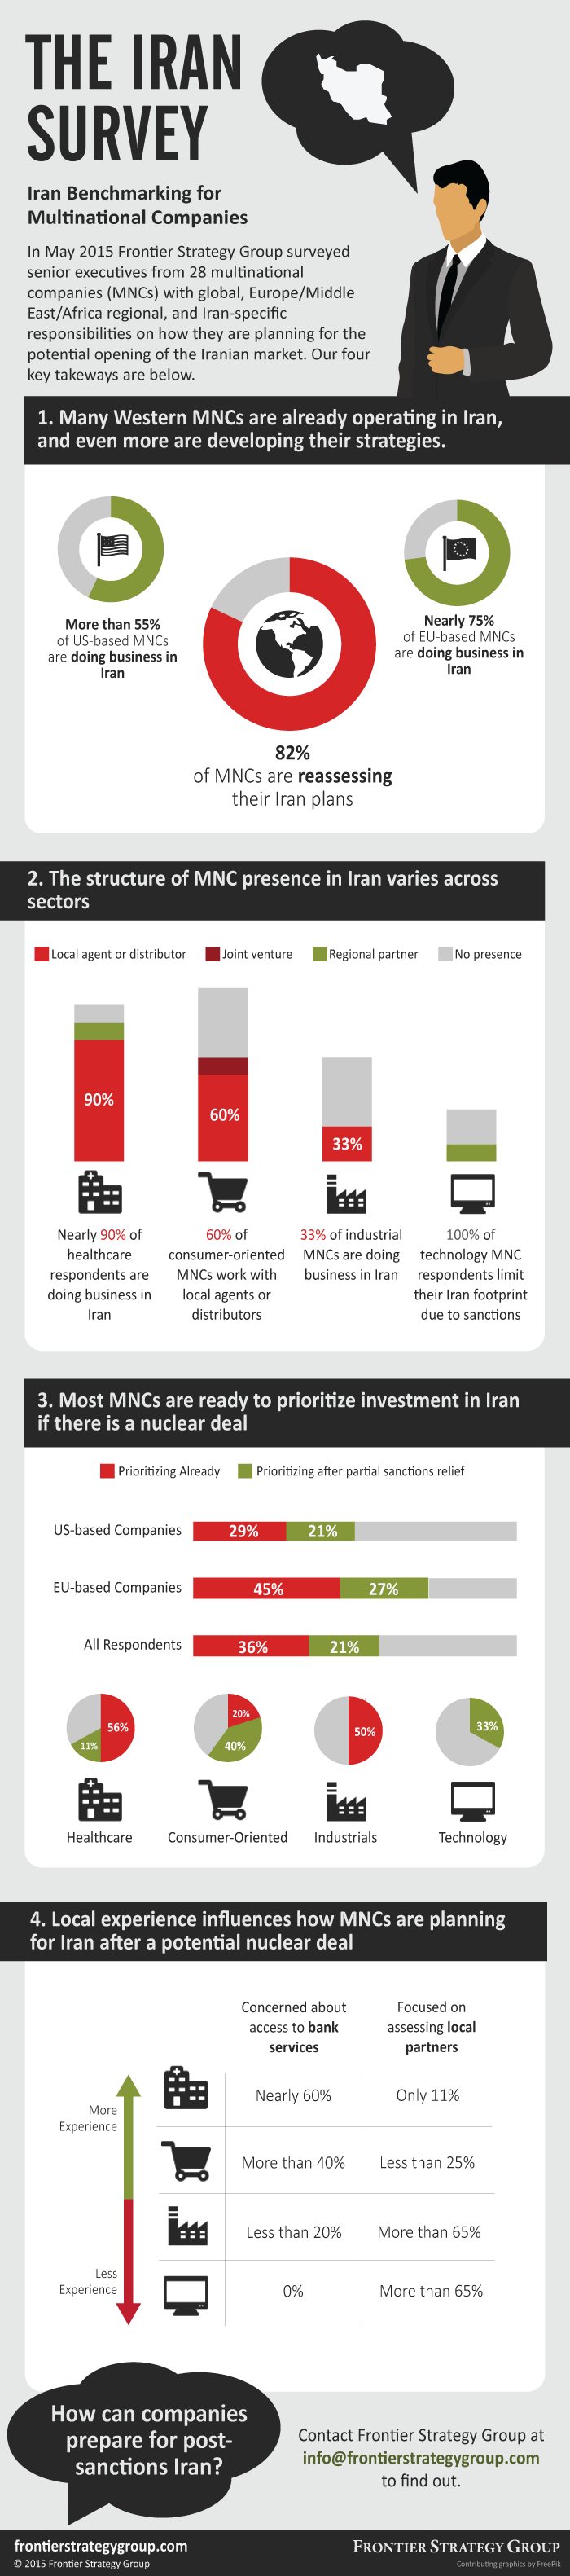 Infographic-FSG-IranSurvey.png